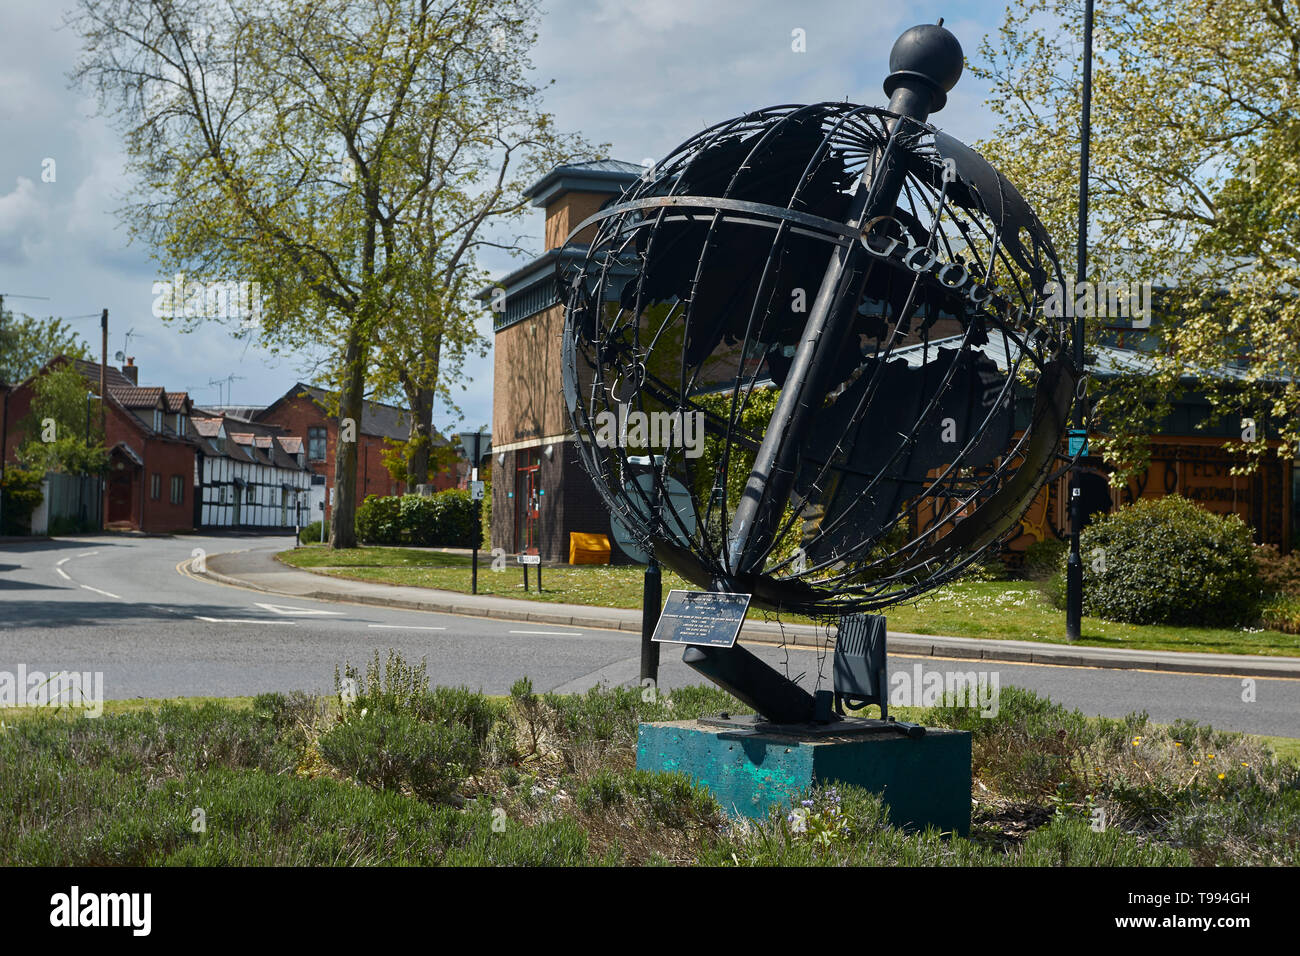 The Alcester globe presented to commemorate peace after WW2, Alcester, Vale of Evesham, England, United Kingdom, Europe - Stock Image